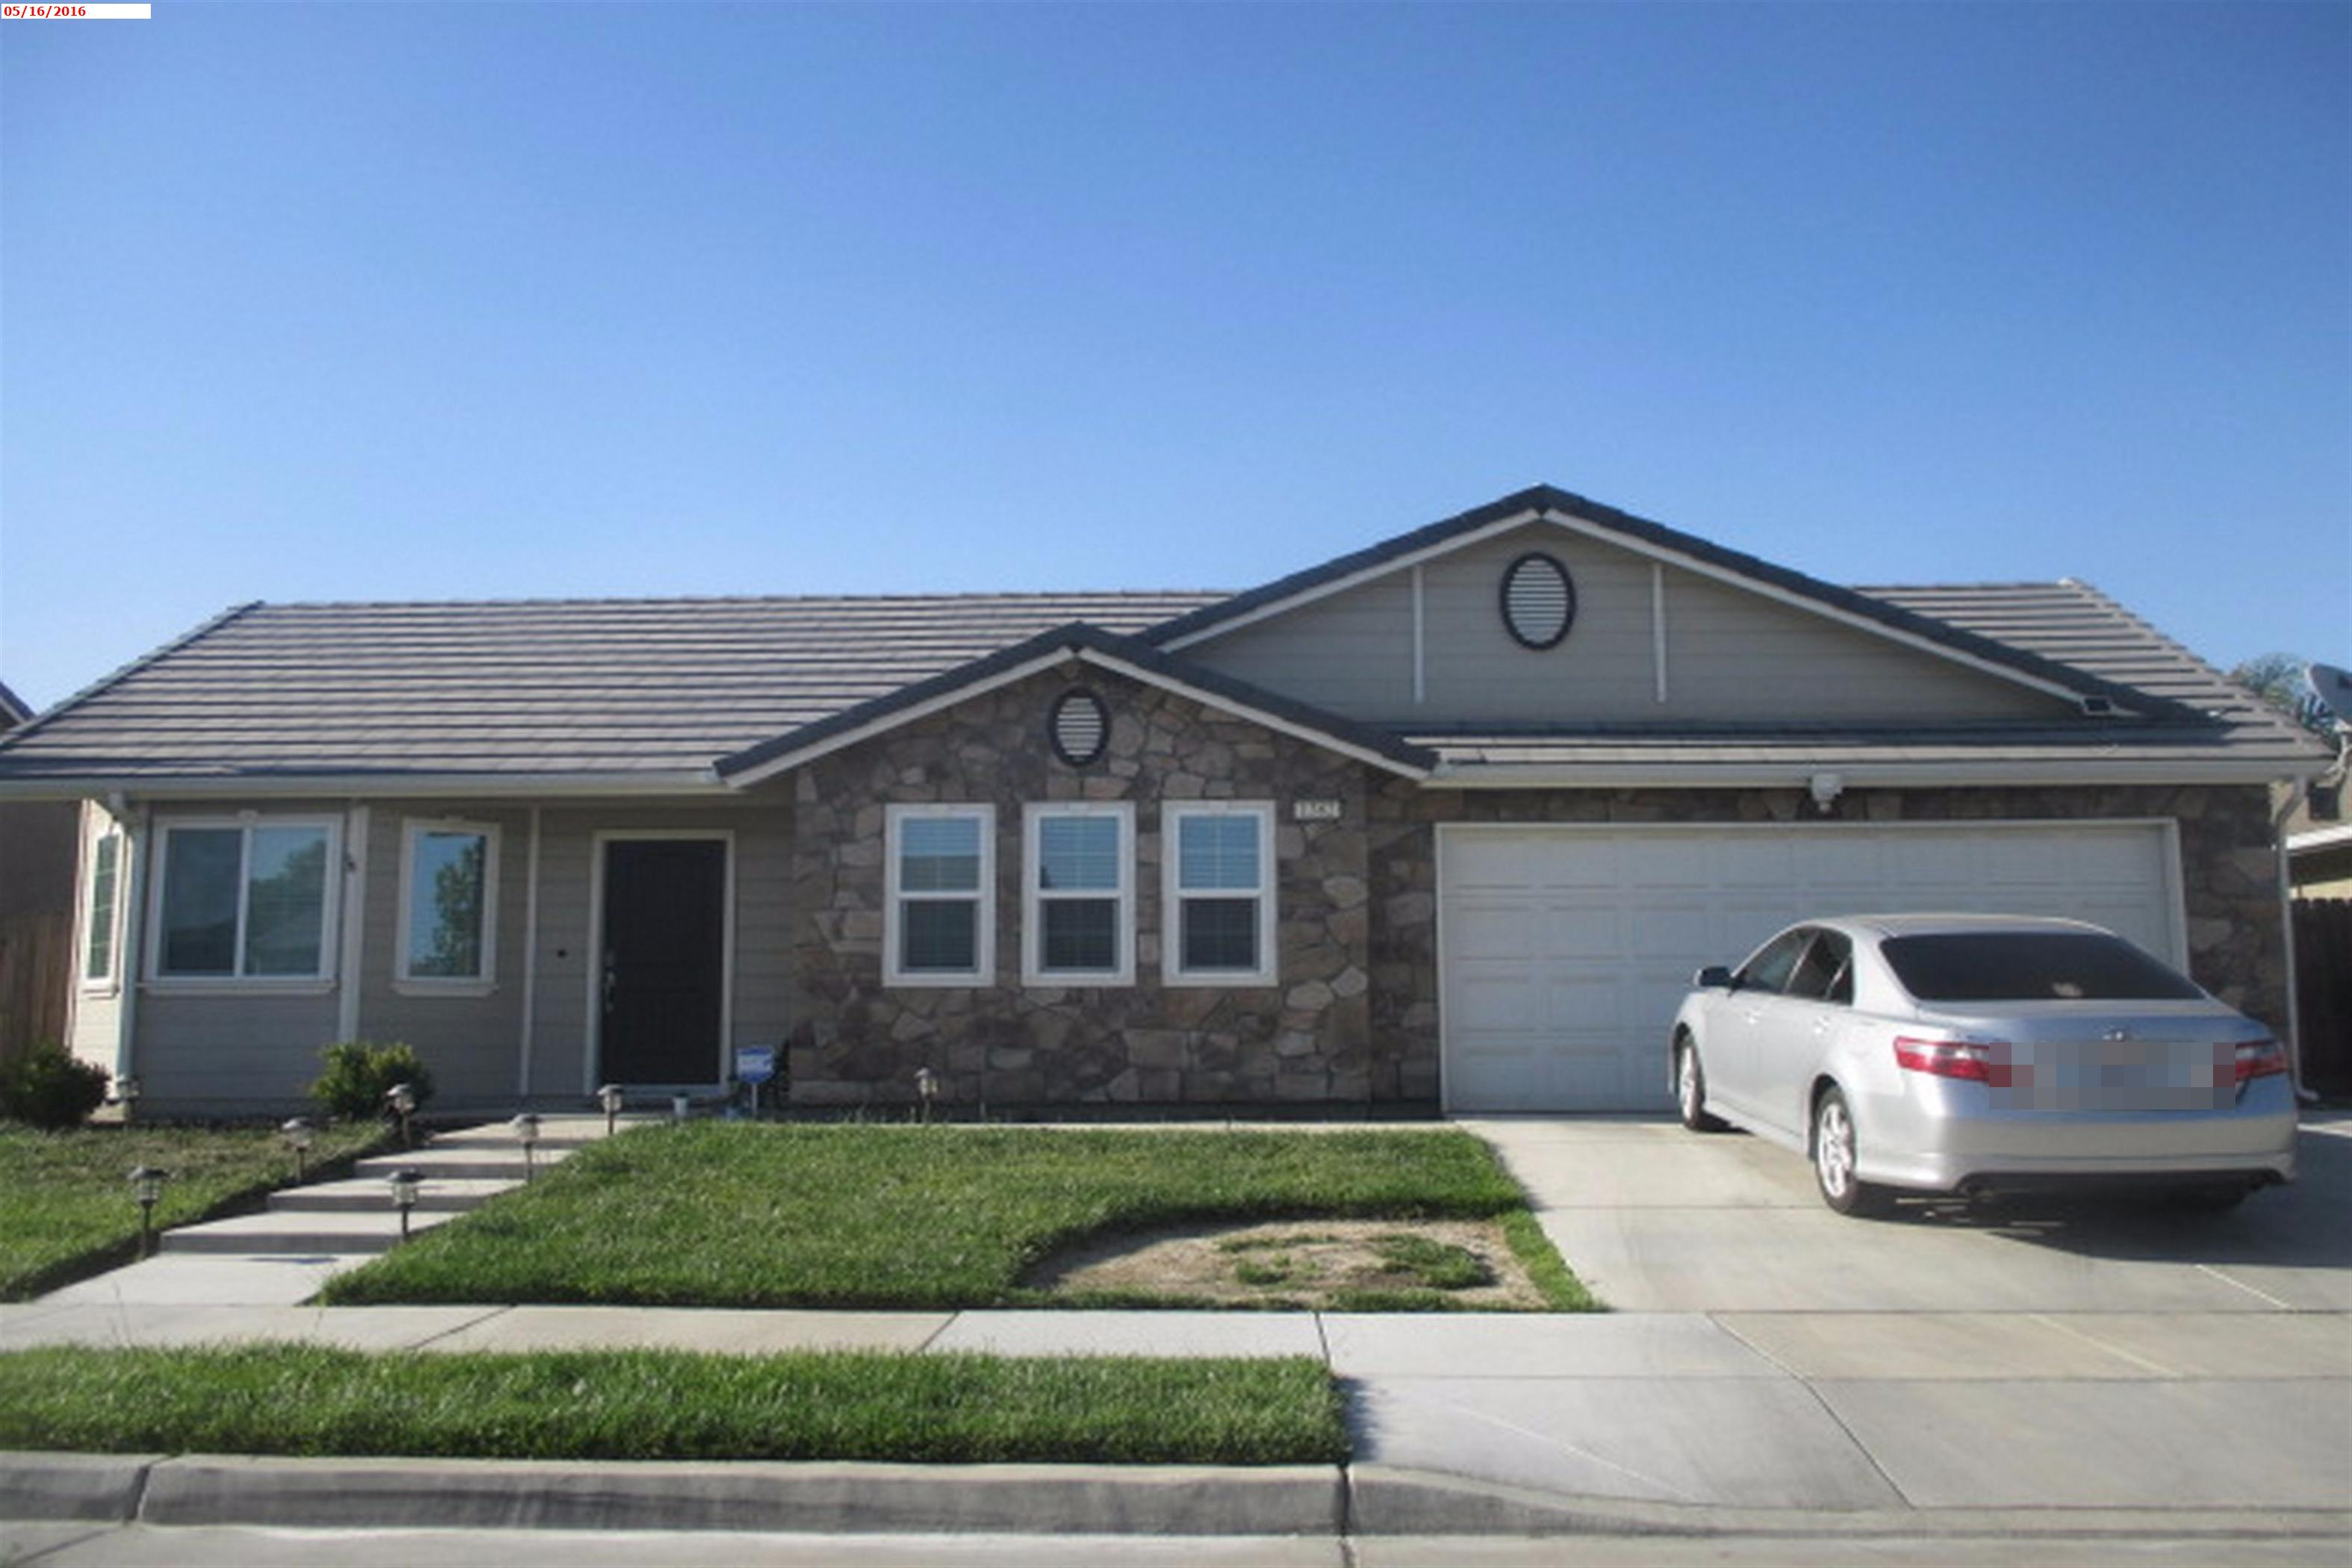 1382 National Dr, Lemoore, CA 93245